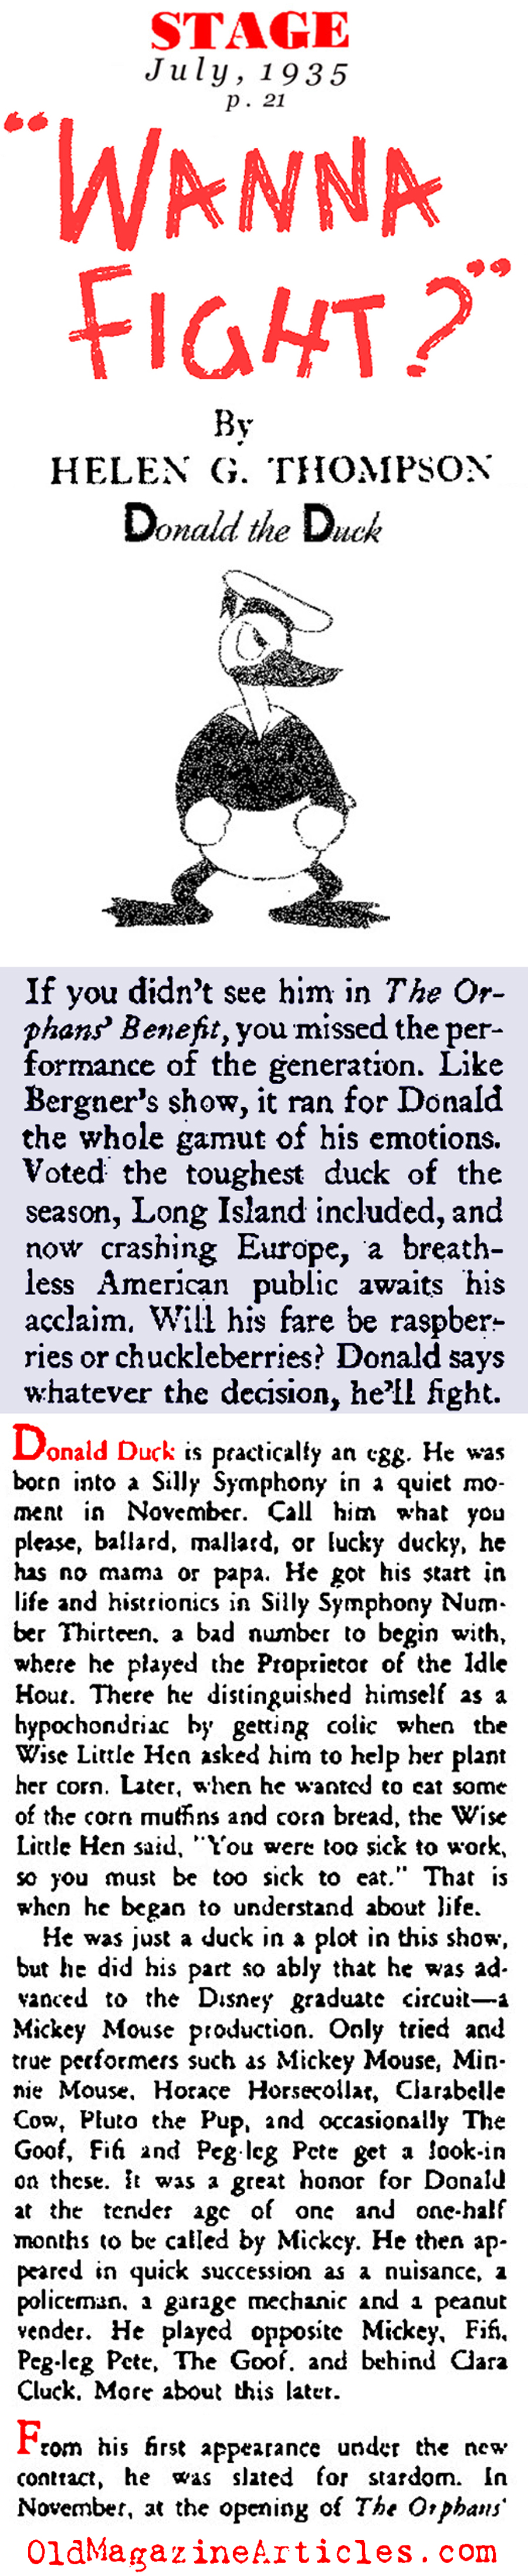 The Birth of Donald Duck  (Stage Magazine, 1935)